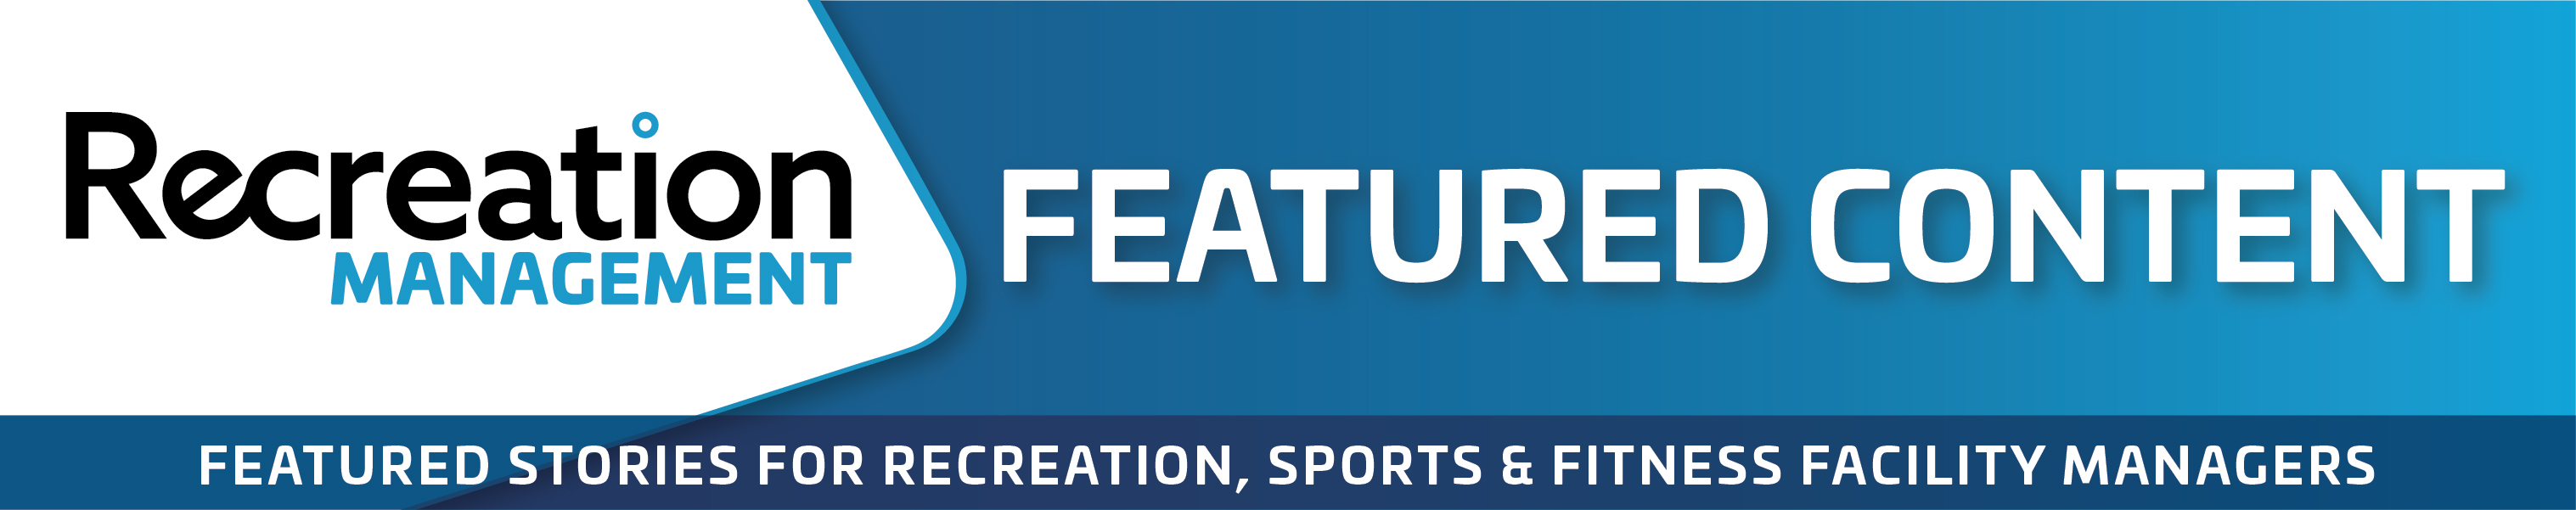 Recreation Management Featured Content - Featured Stories for Recreation, Sports & Fitness Facility Managers